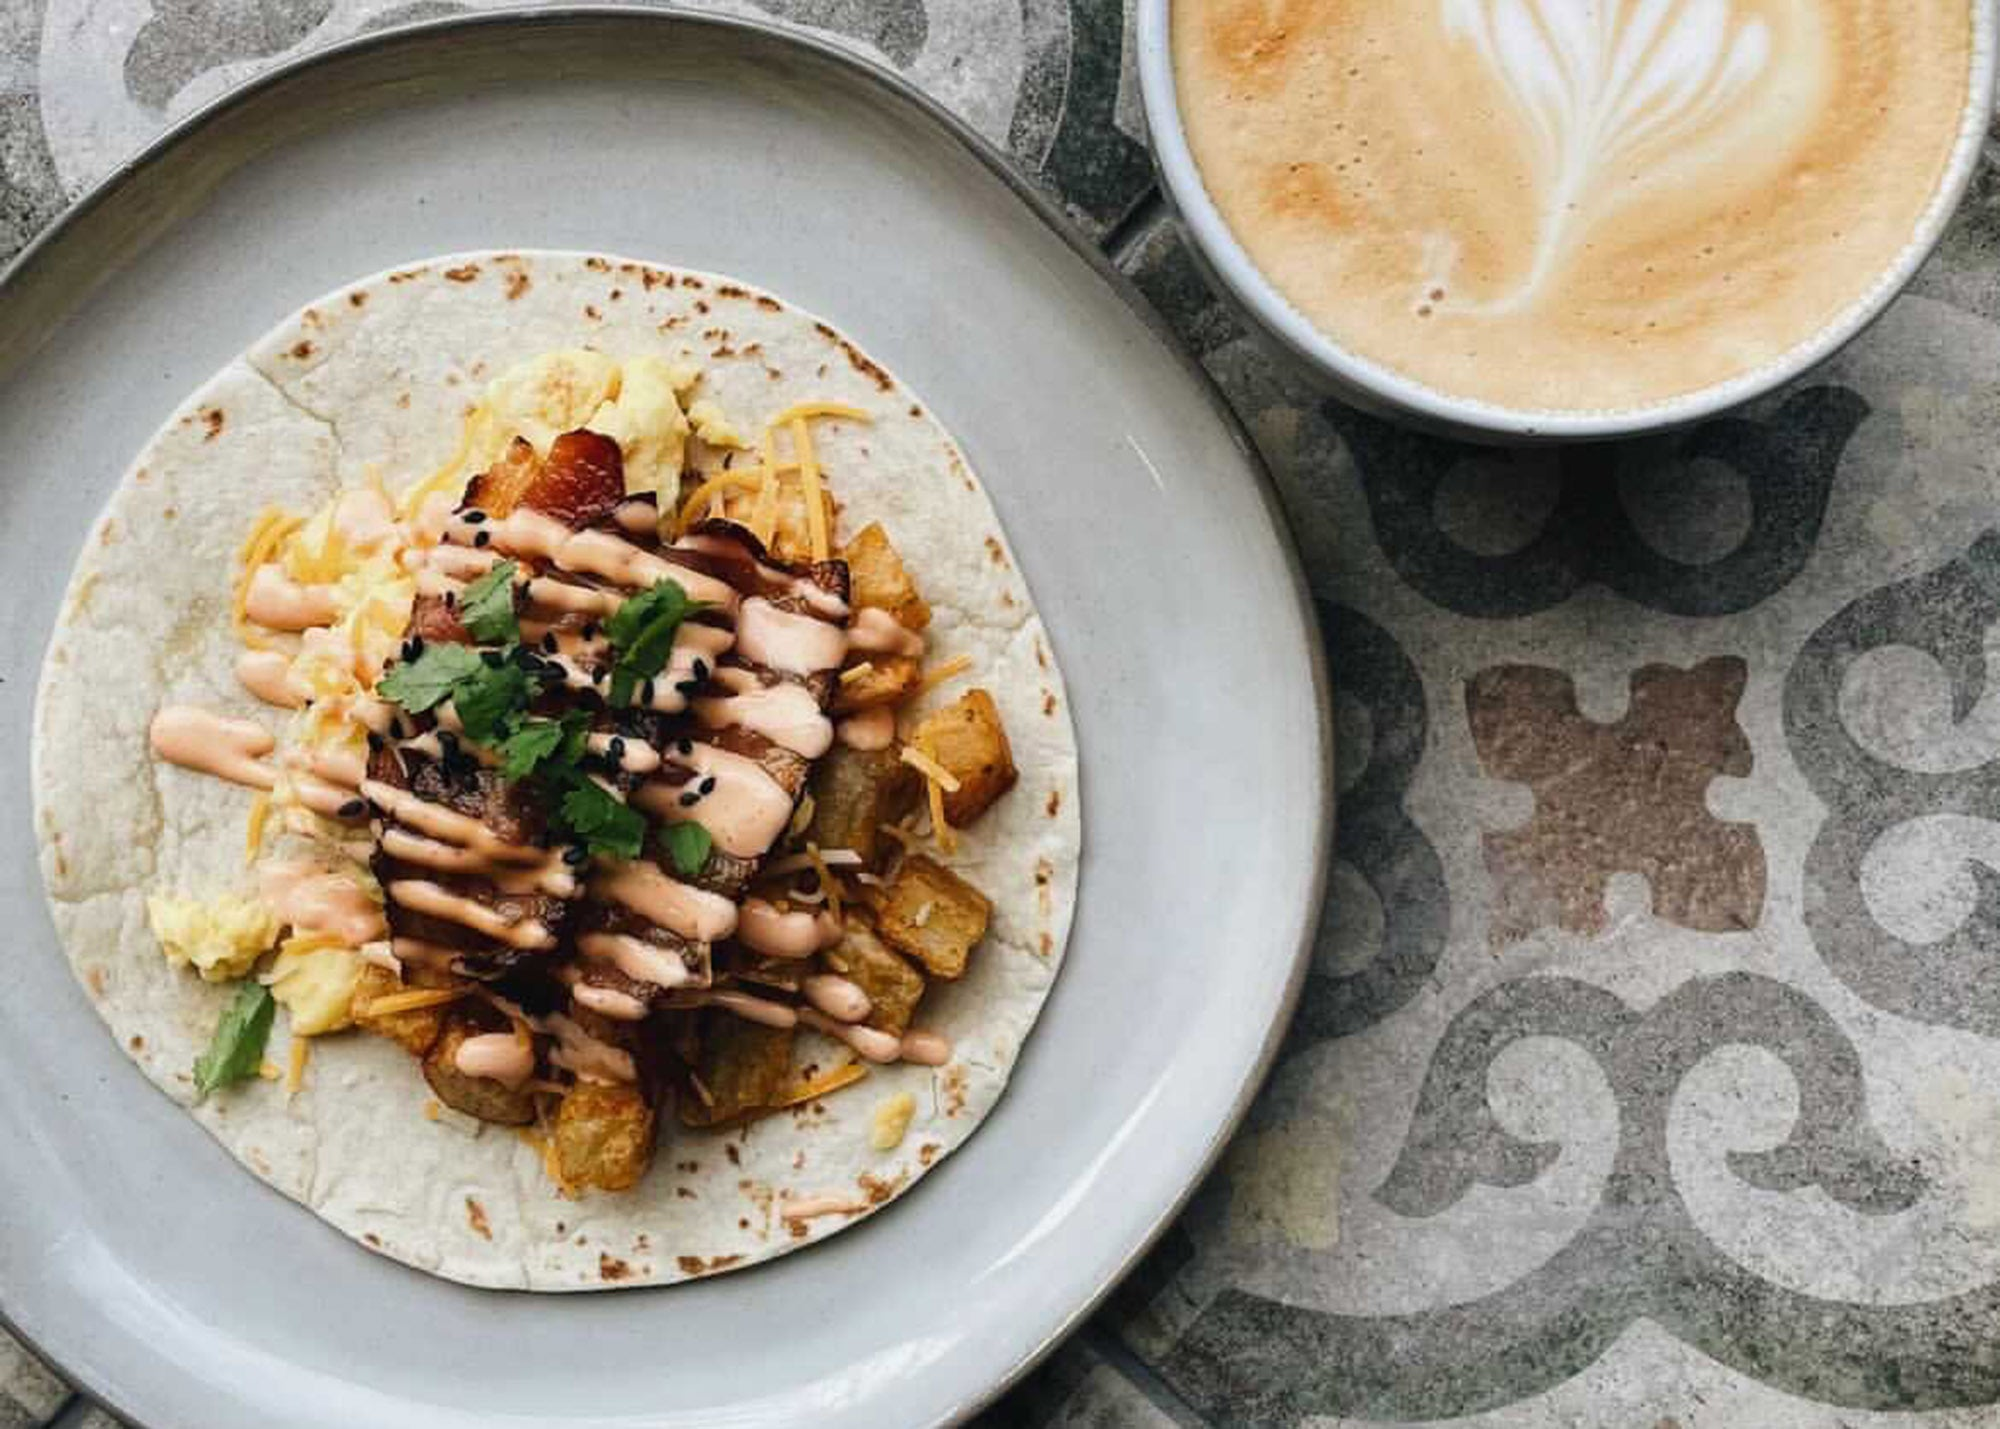 Breakfast tacos at Glasser Coffee Co.